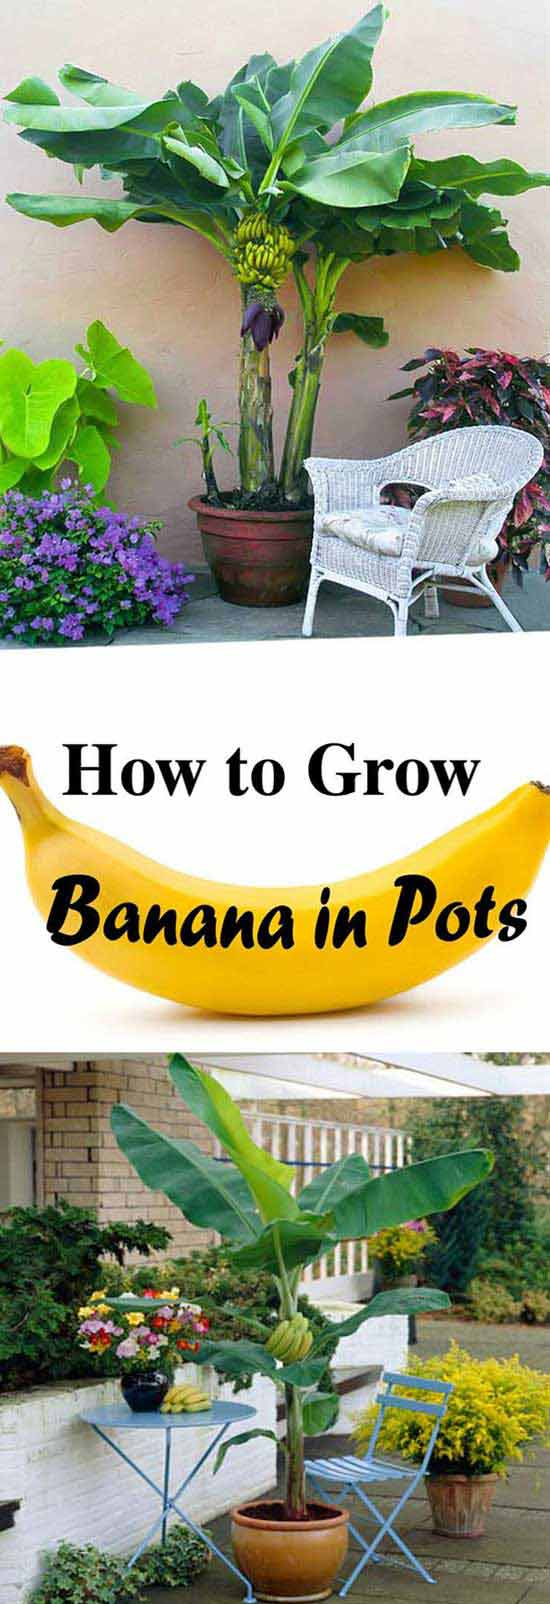 02-growing-banana-in-pots